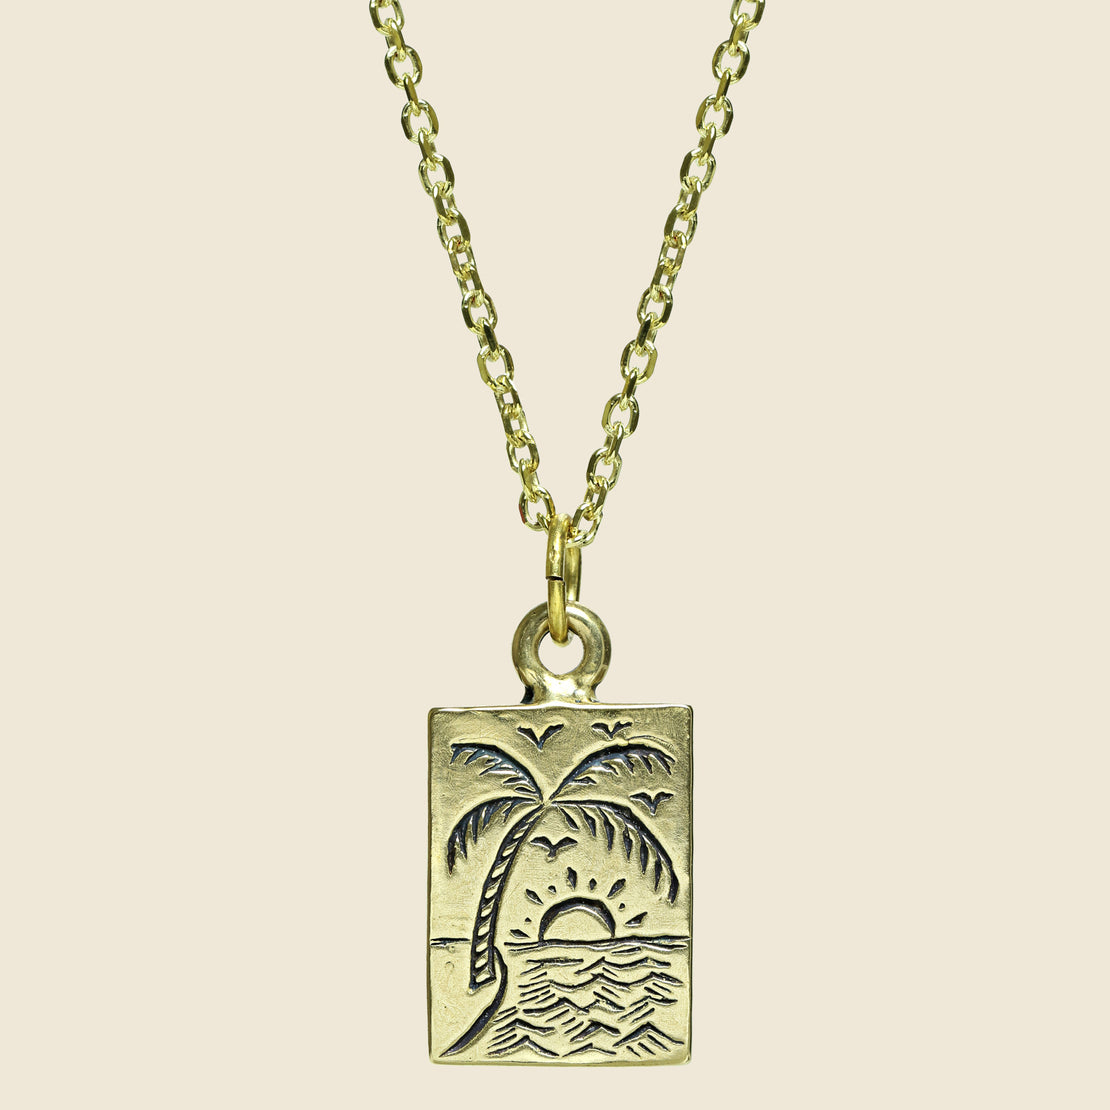 LHN Jewelry Paradise Necklace - Brass